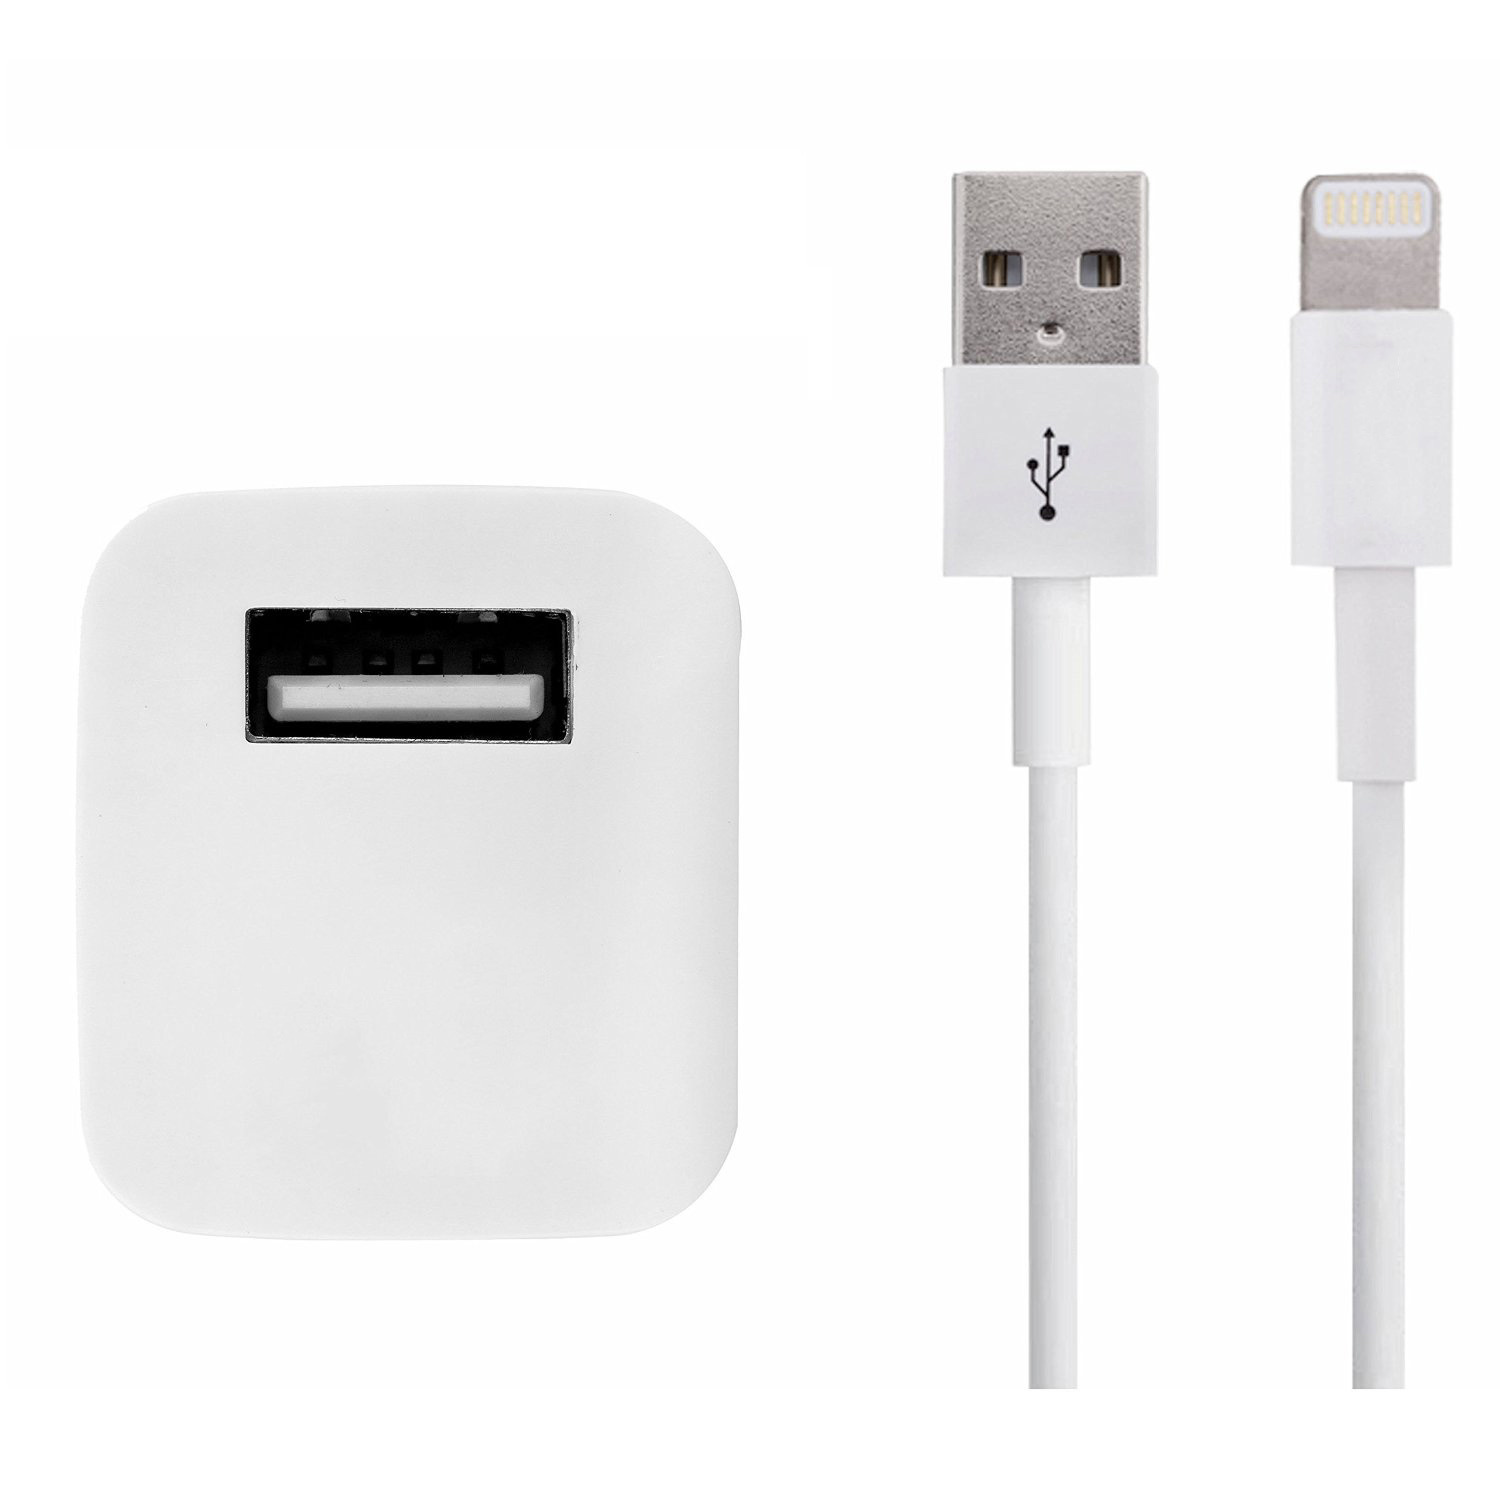 5W USB Power Adapter Plus 1m Lightning Cable Charger for iPhone 55c5s66 Plus 77plus (Certified Refurbished)